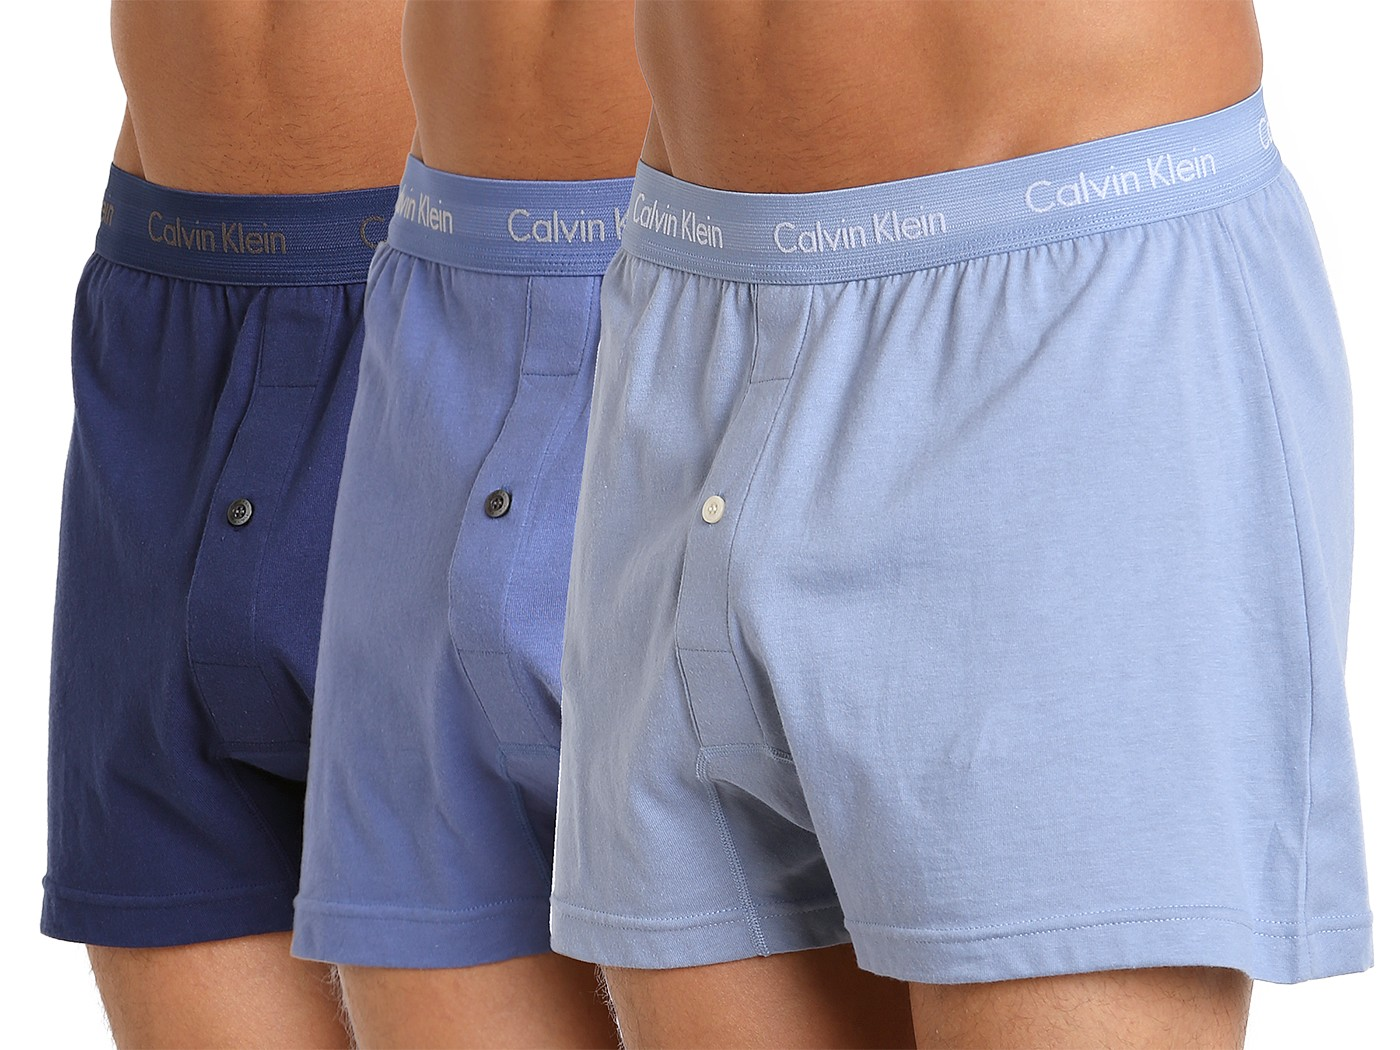 f441031a2c40 Calvin Klein Cotton Classics Knit Boxer 3-Pack Blue/Water/Blue NU3040-400  at International Jock